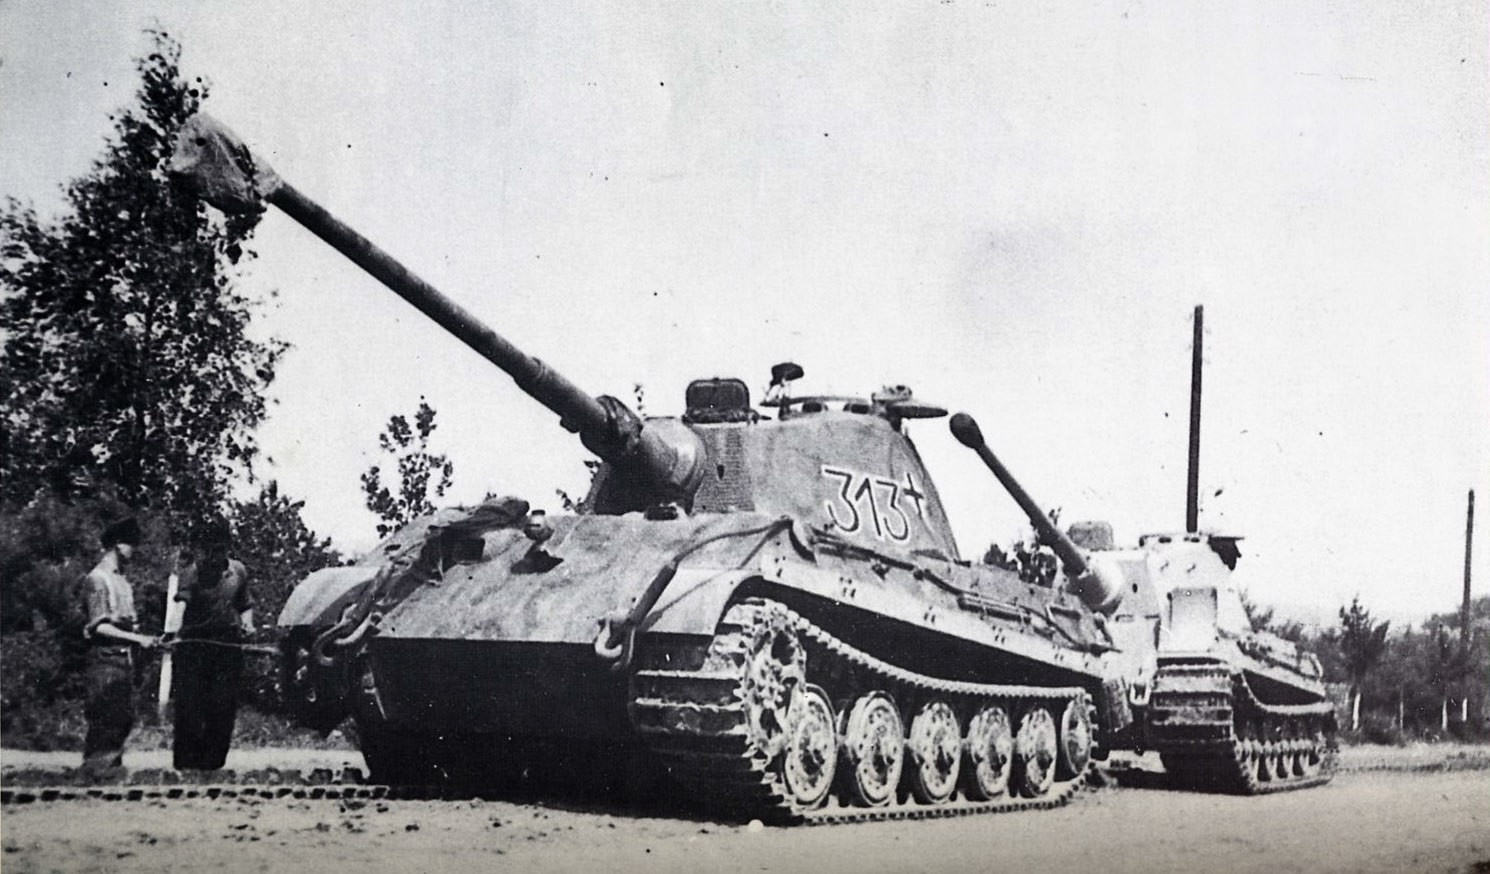 Tigers of the 501st heavy tank battalion in Poland 1944